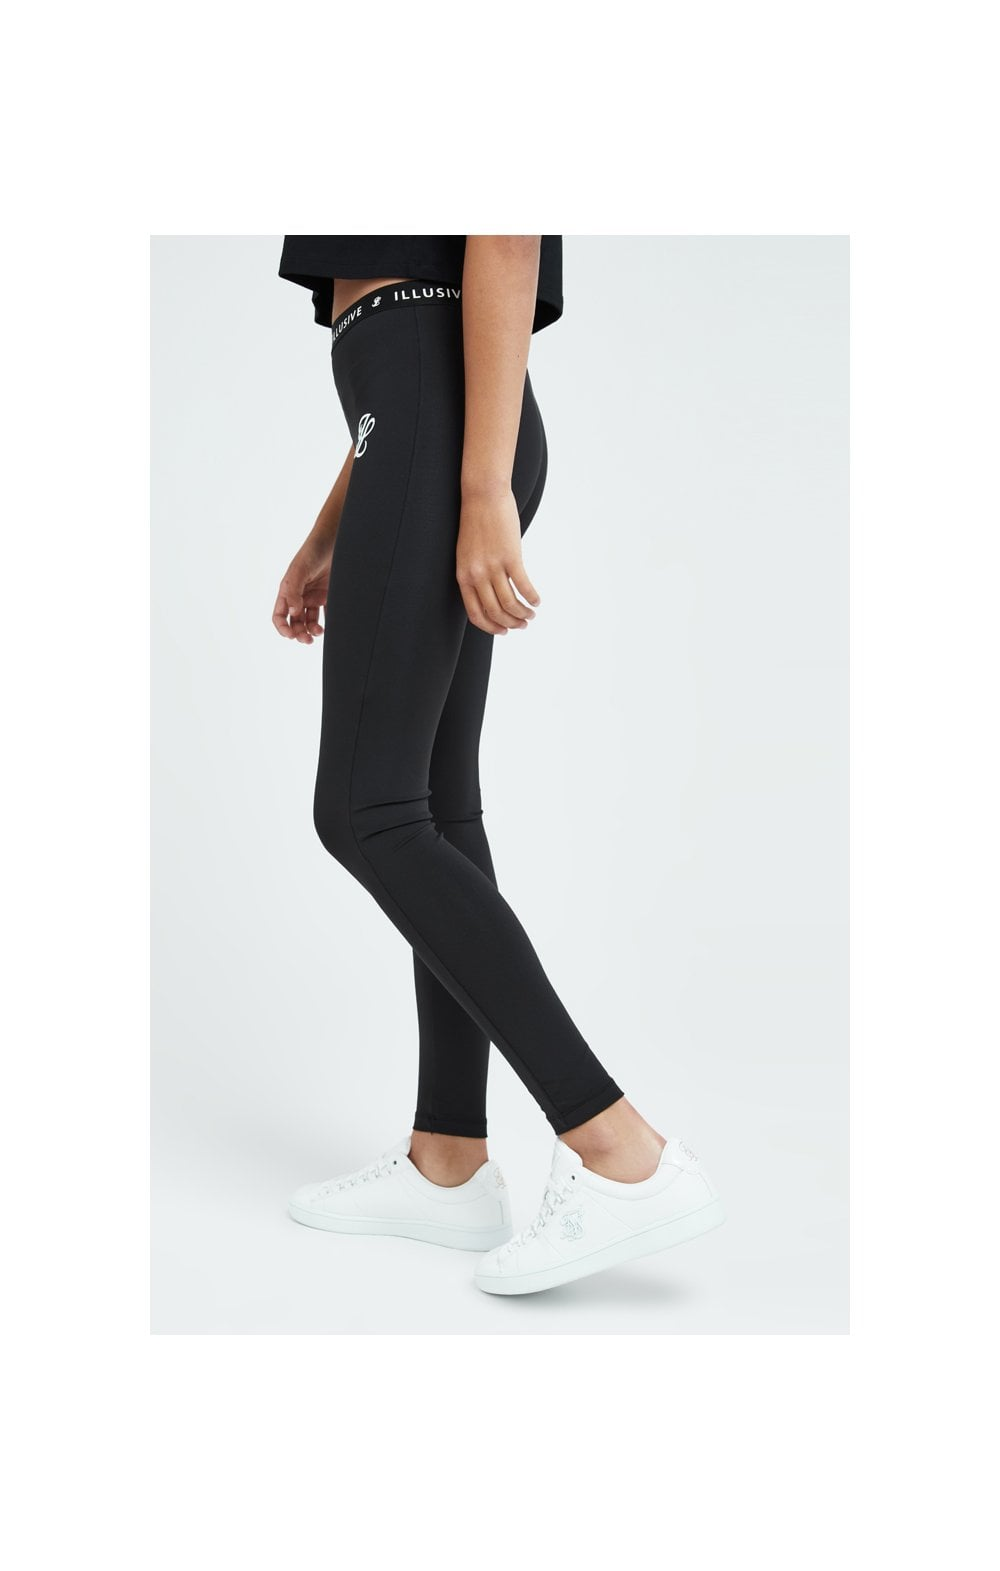 Illusive London Core Leggings - Black (2)